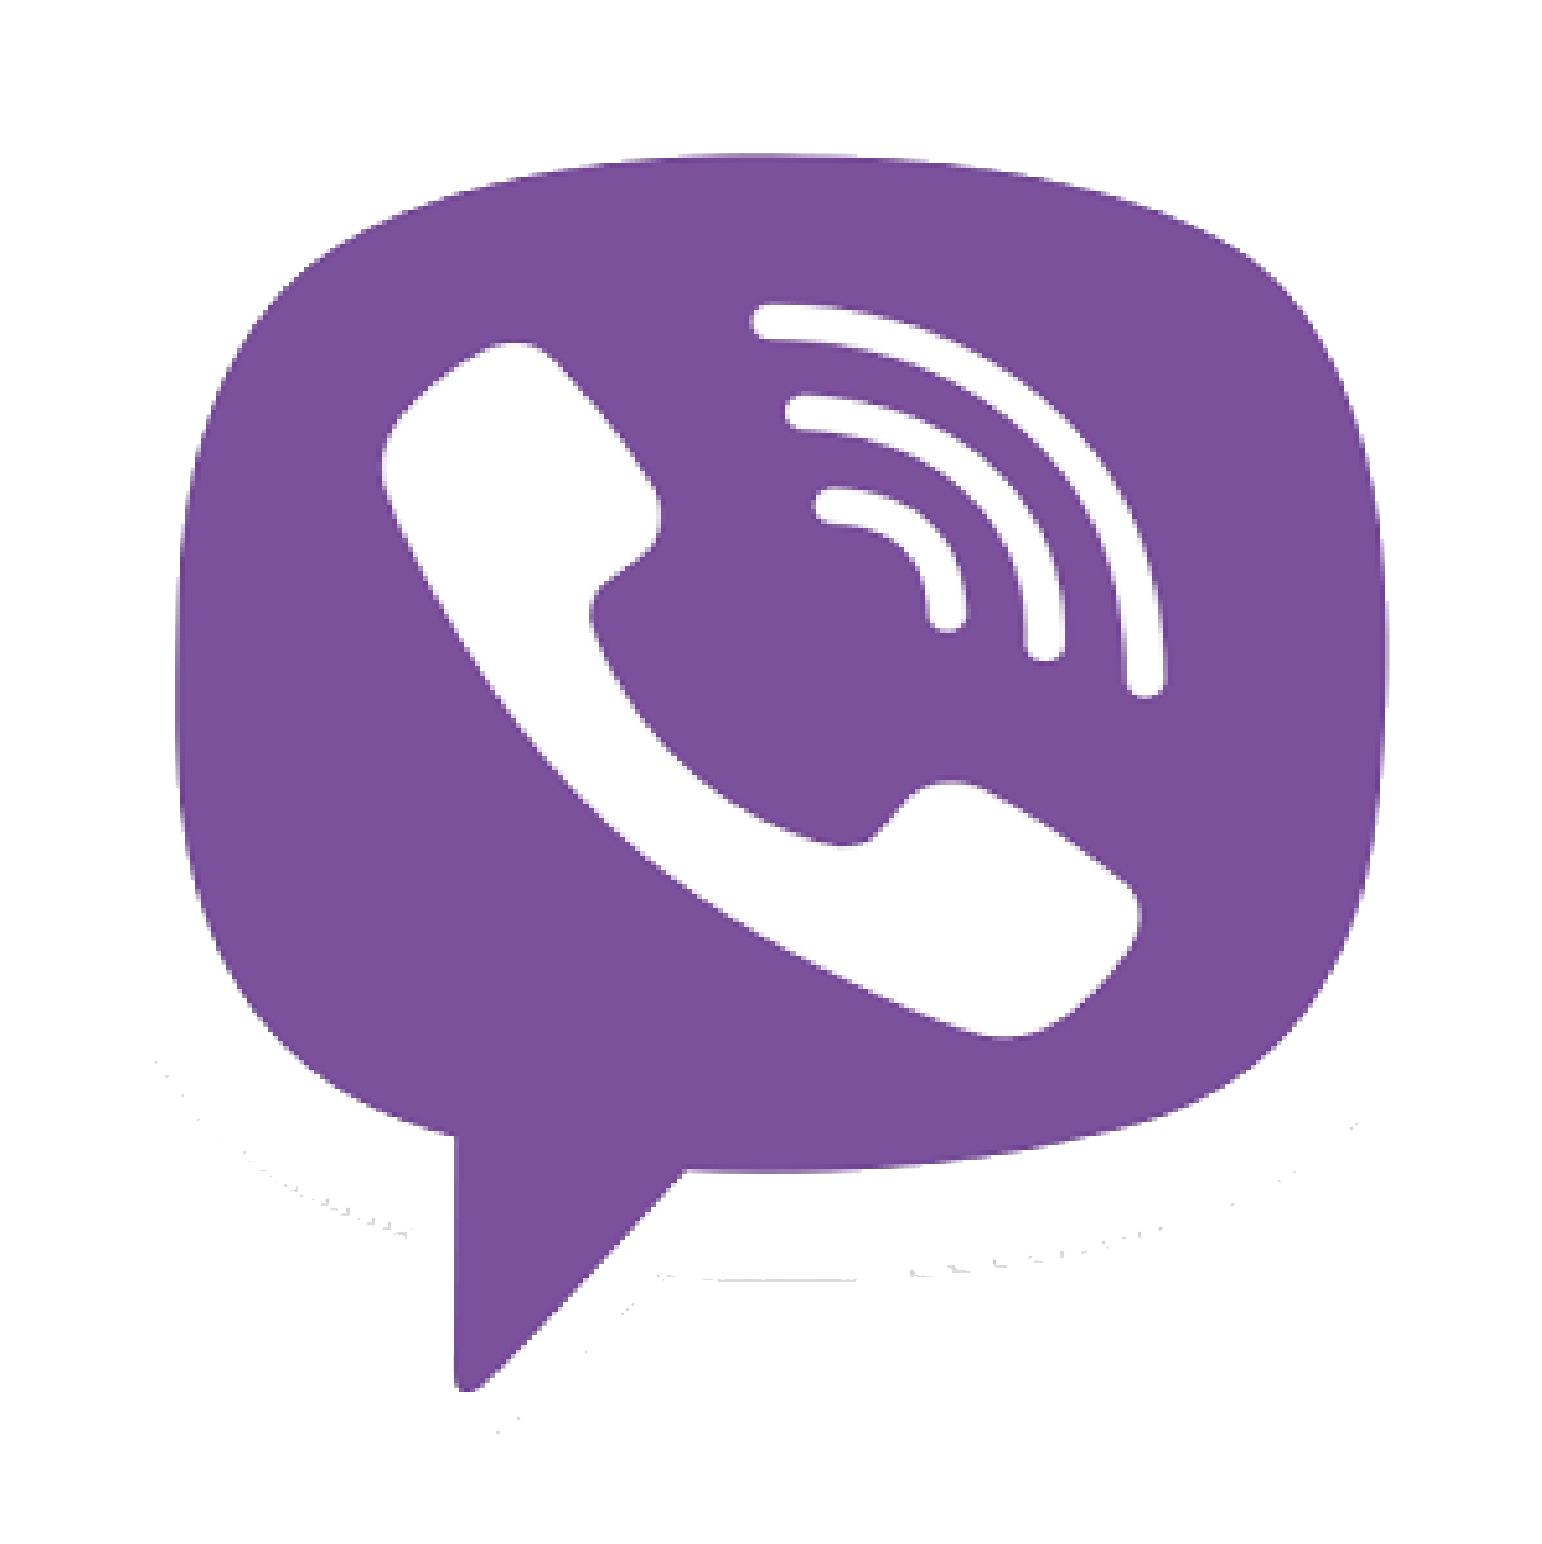 Telephone clipart telephone message. Viber text messaging instant